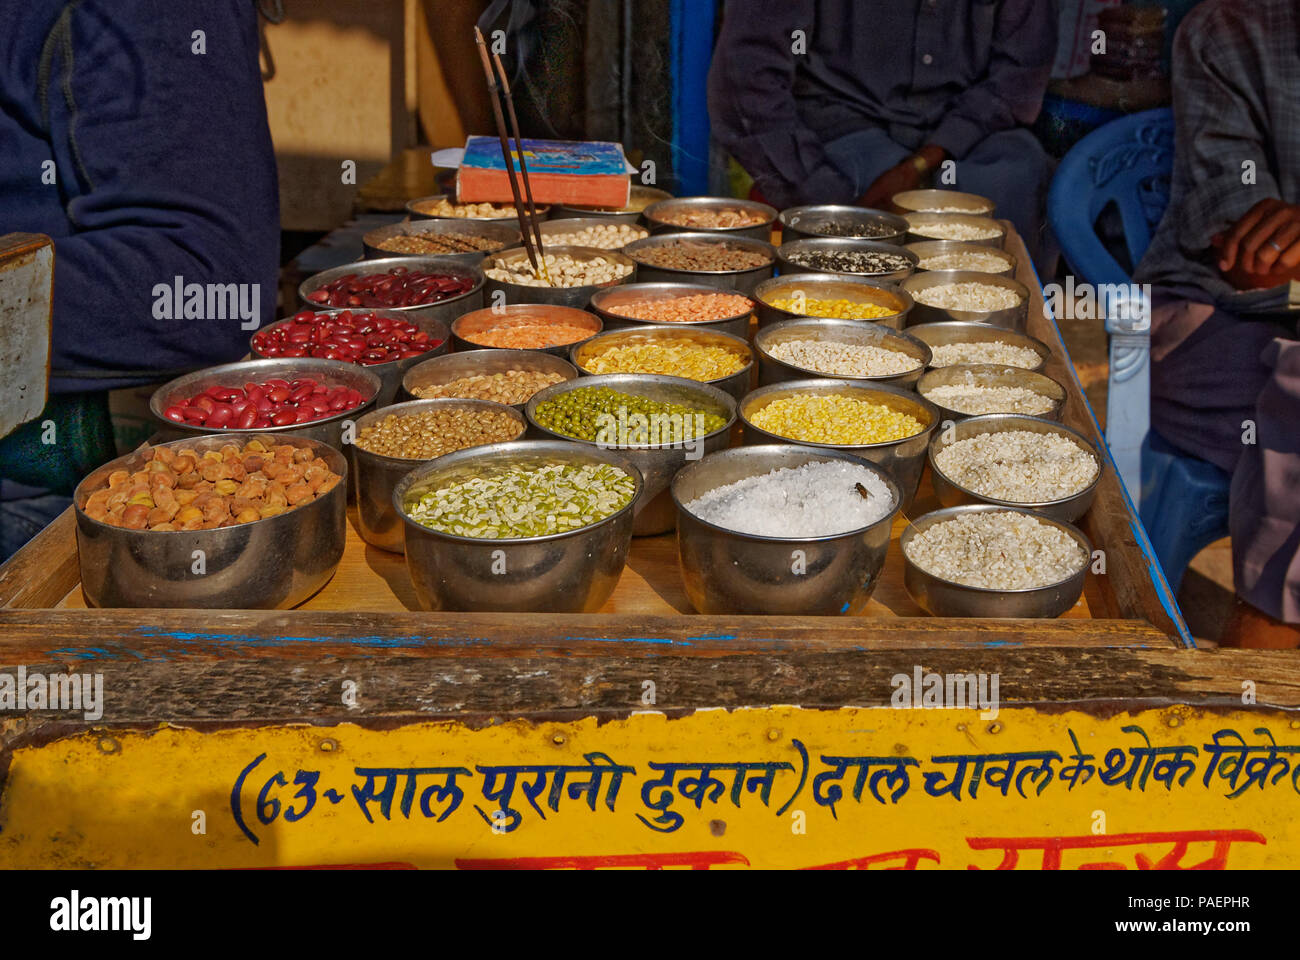 Food market in India selling dried pulses and lentils - Stock Image